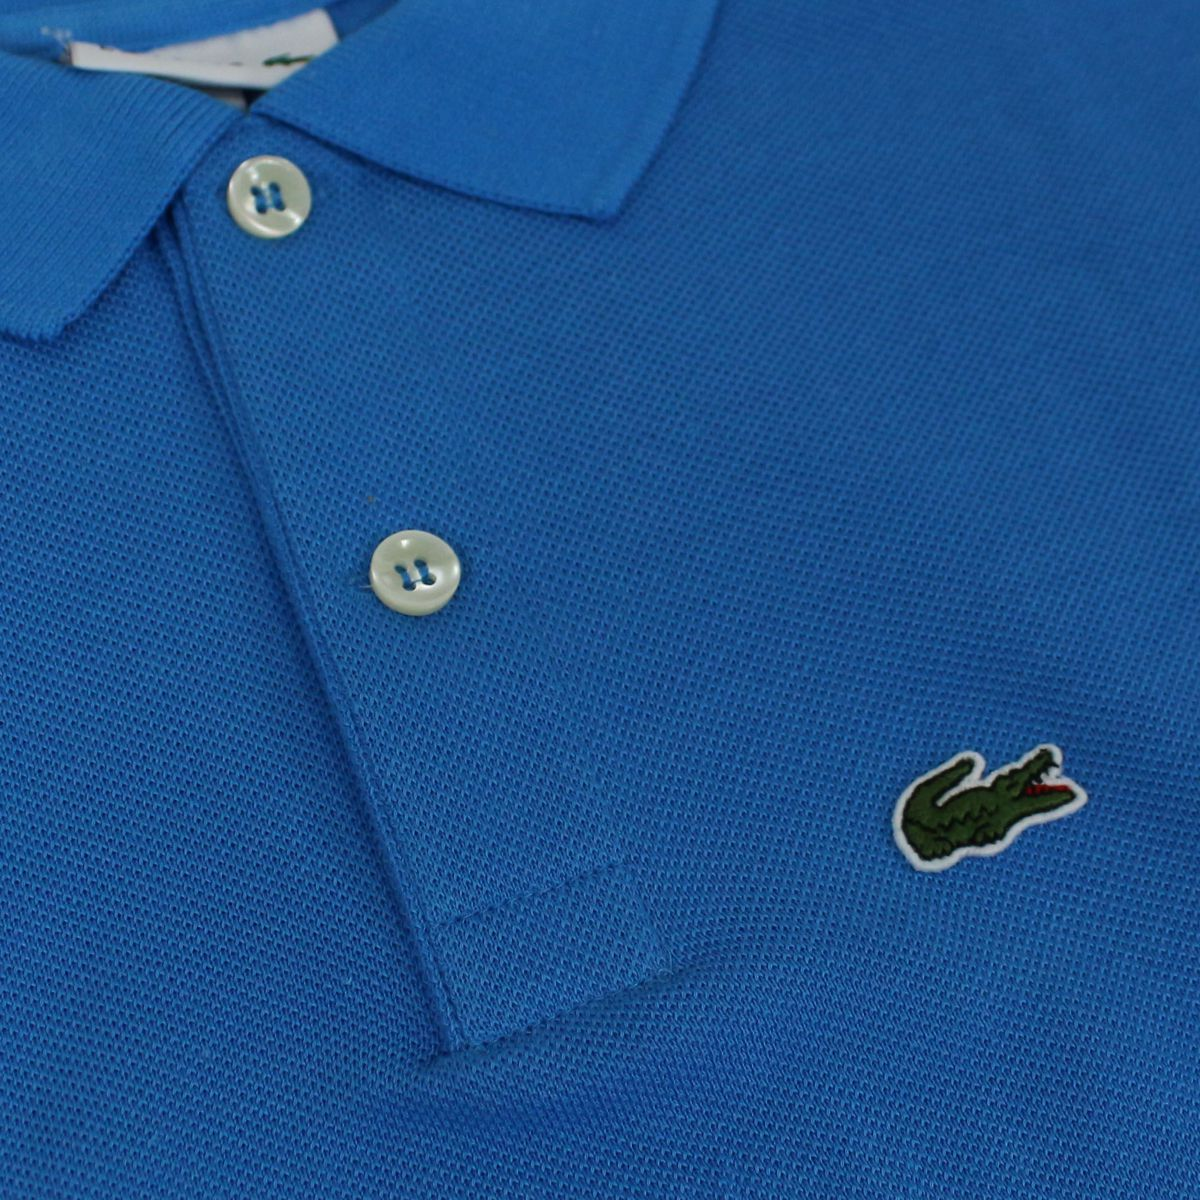 2 button cotton polo shirt Light blue Lacoste